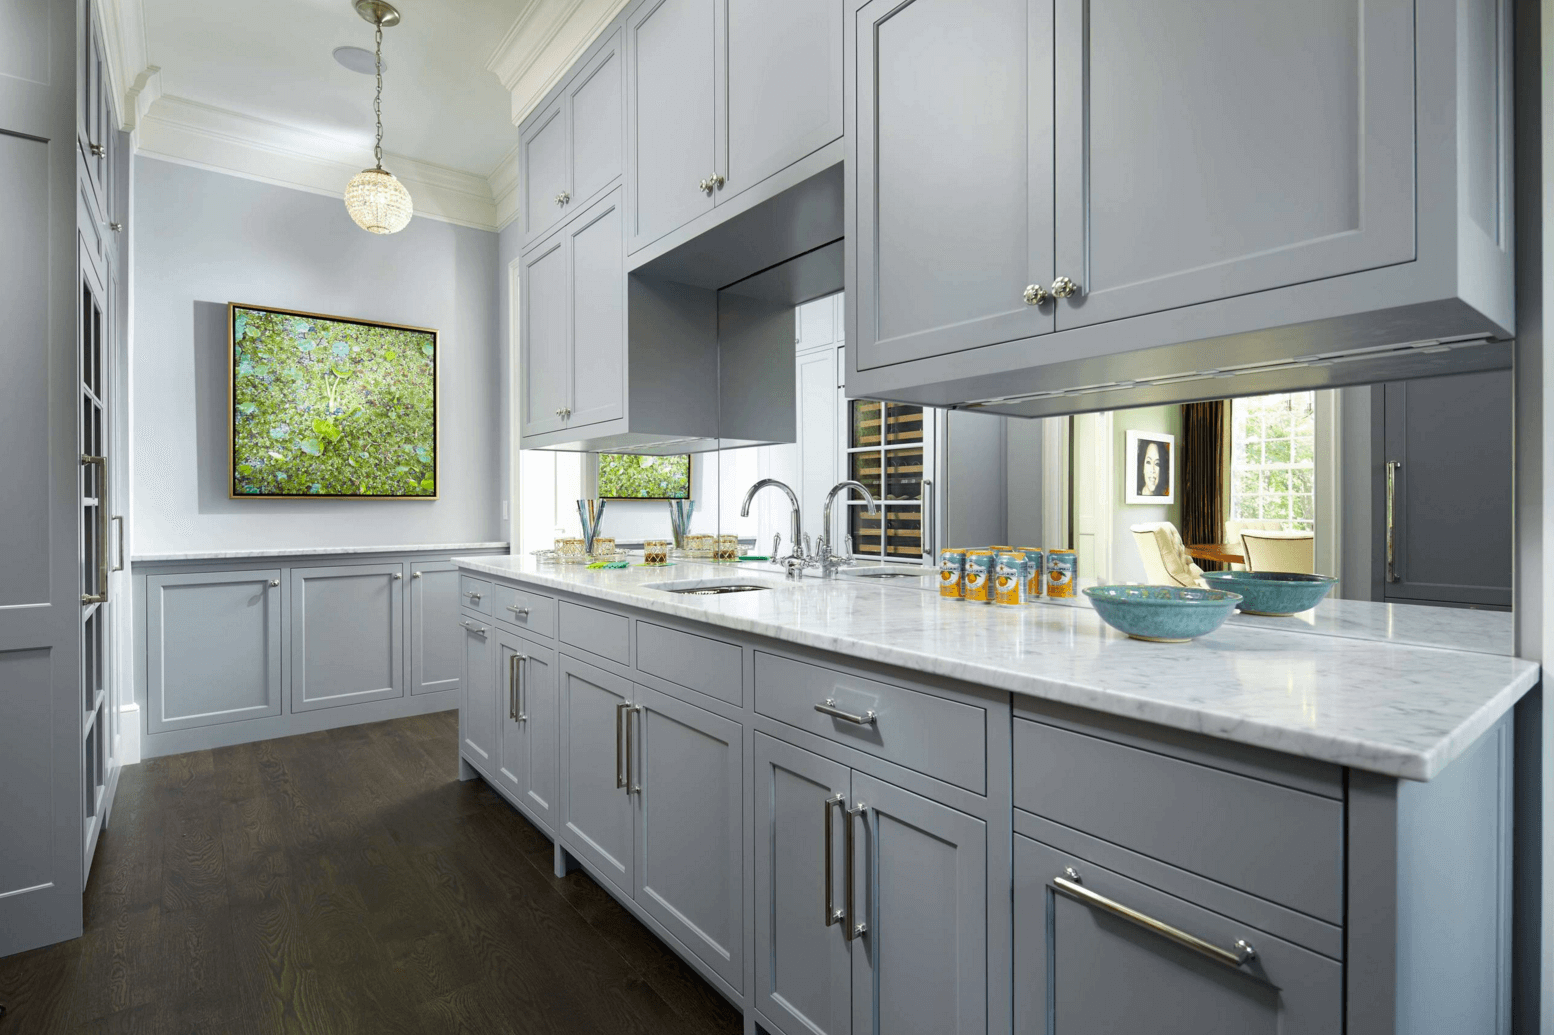 Gray Butlers Pantry Boasts Blue Paint On Upper Walls And Wainscoting Lower Alongside Shaker Cabinets Paired With White Marble